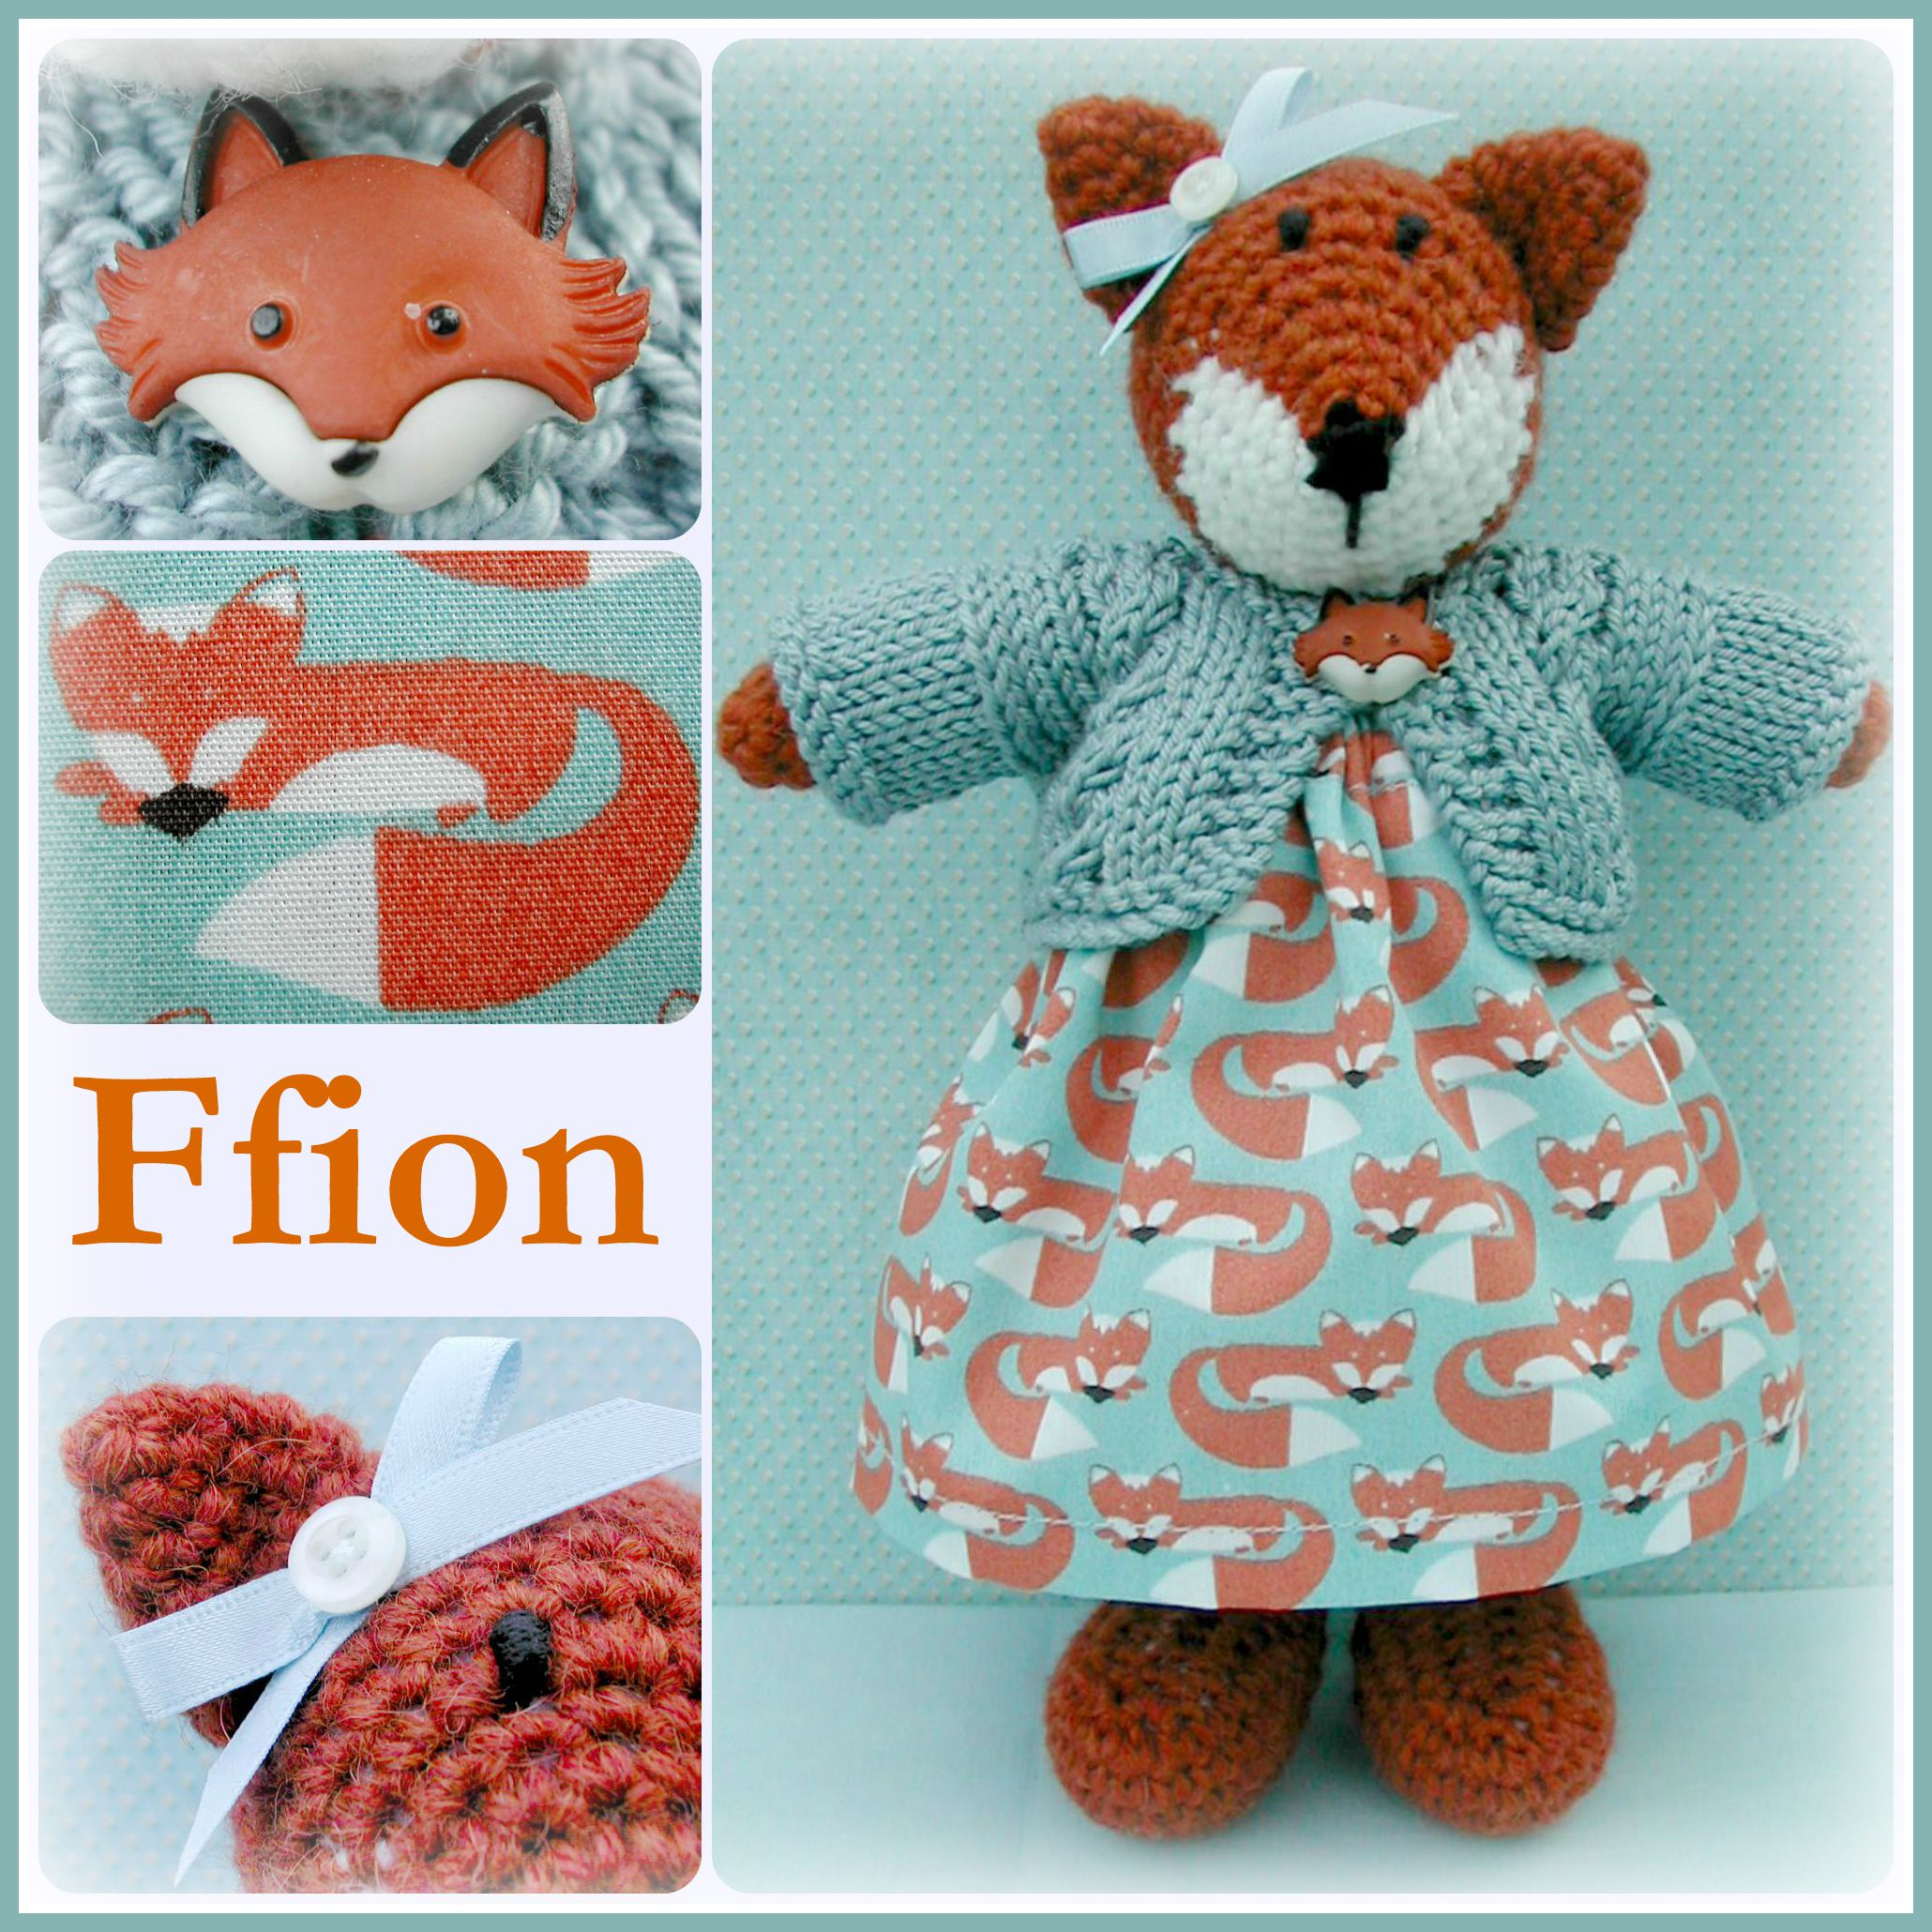 Ffion Collage